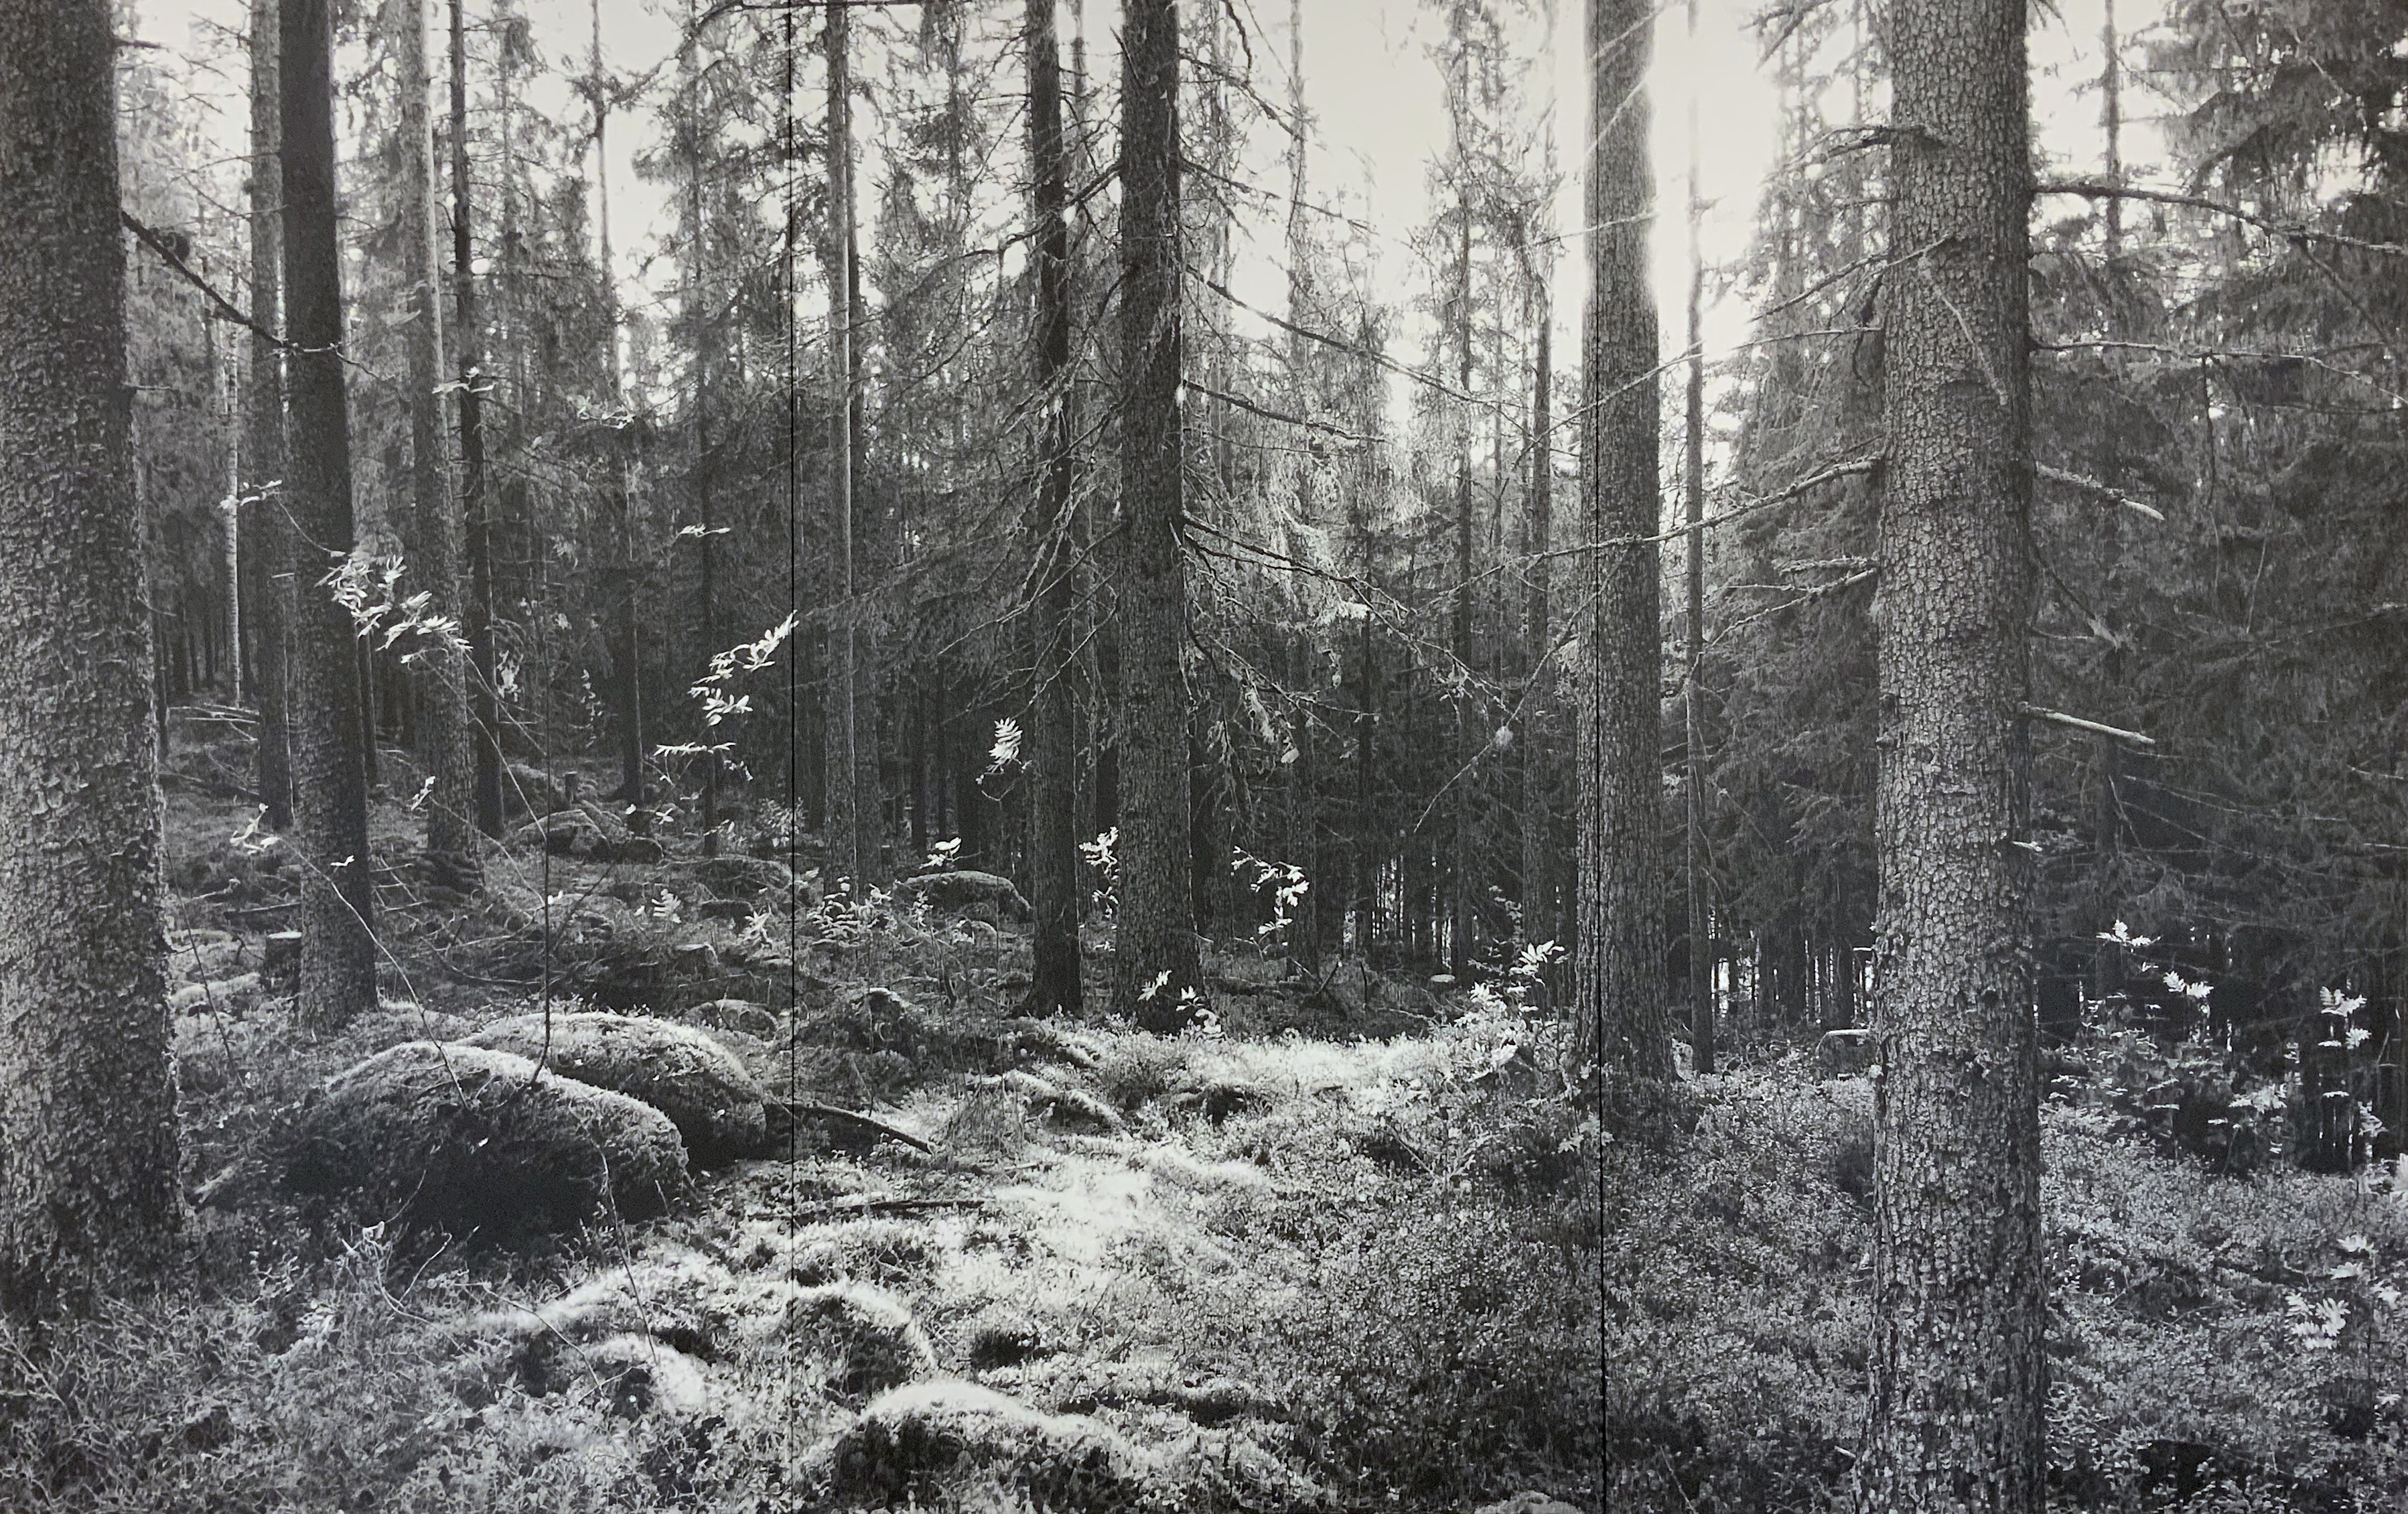 inline_75_https://galerie-lauth.de/wp-content/uploads/2019/01/《Forest》-2019-180-×-285cm-紙に黒鉛、純金泥、顔料.jpg